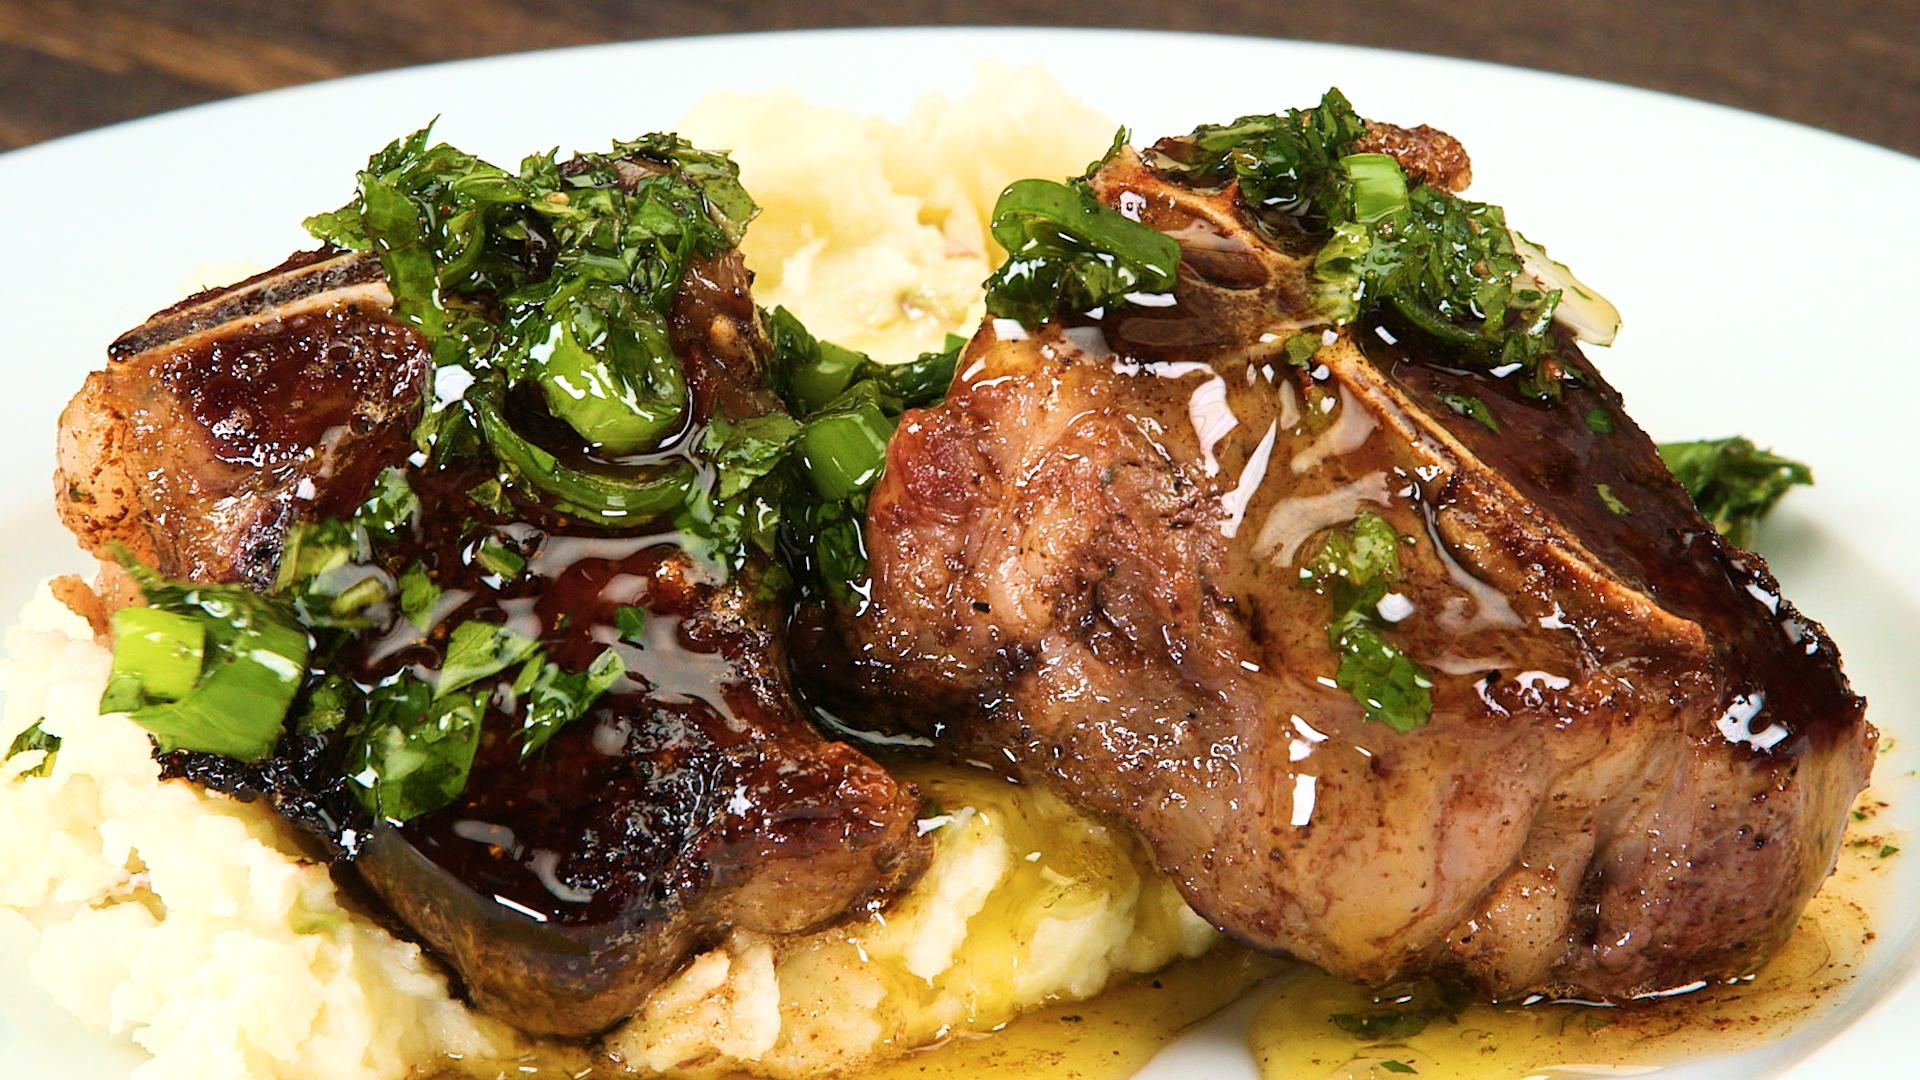 wd-mutton-chops-with-salsa-verde-image